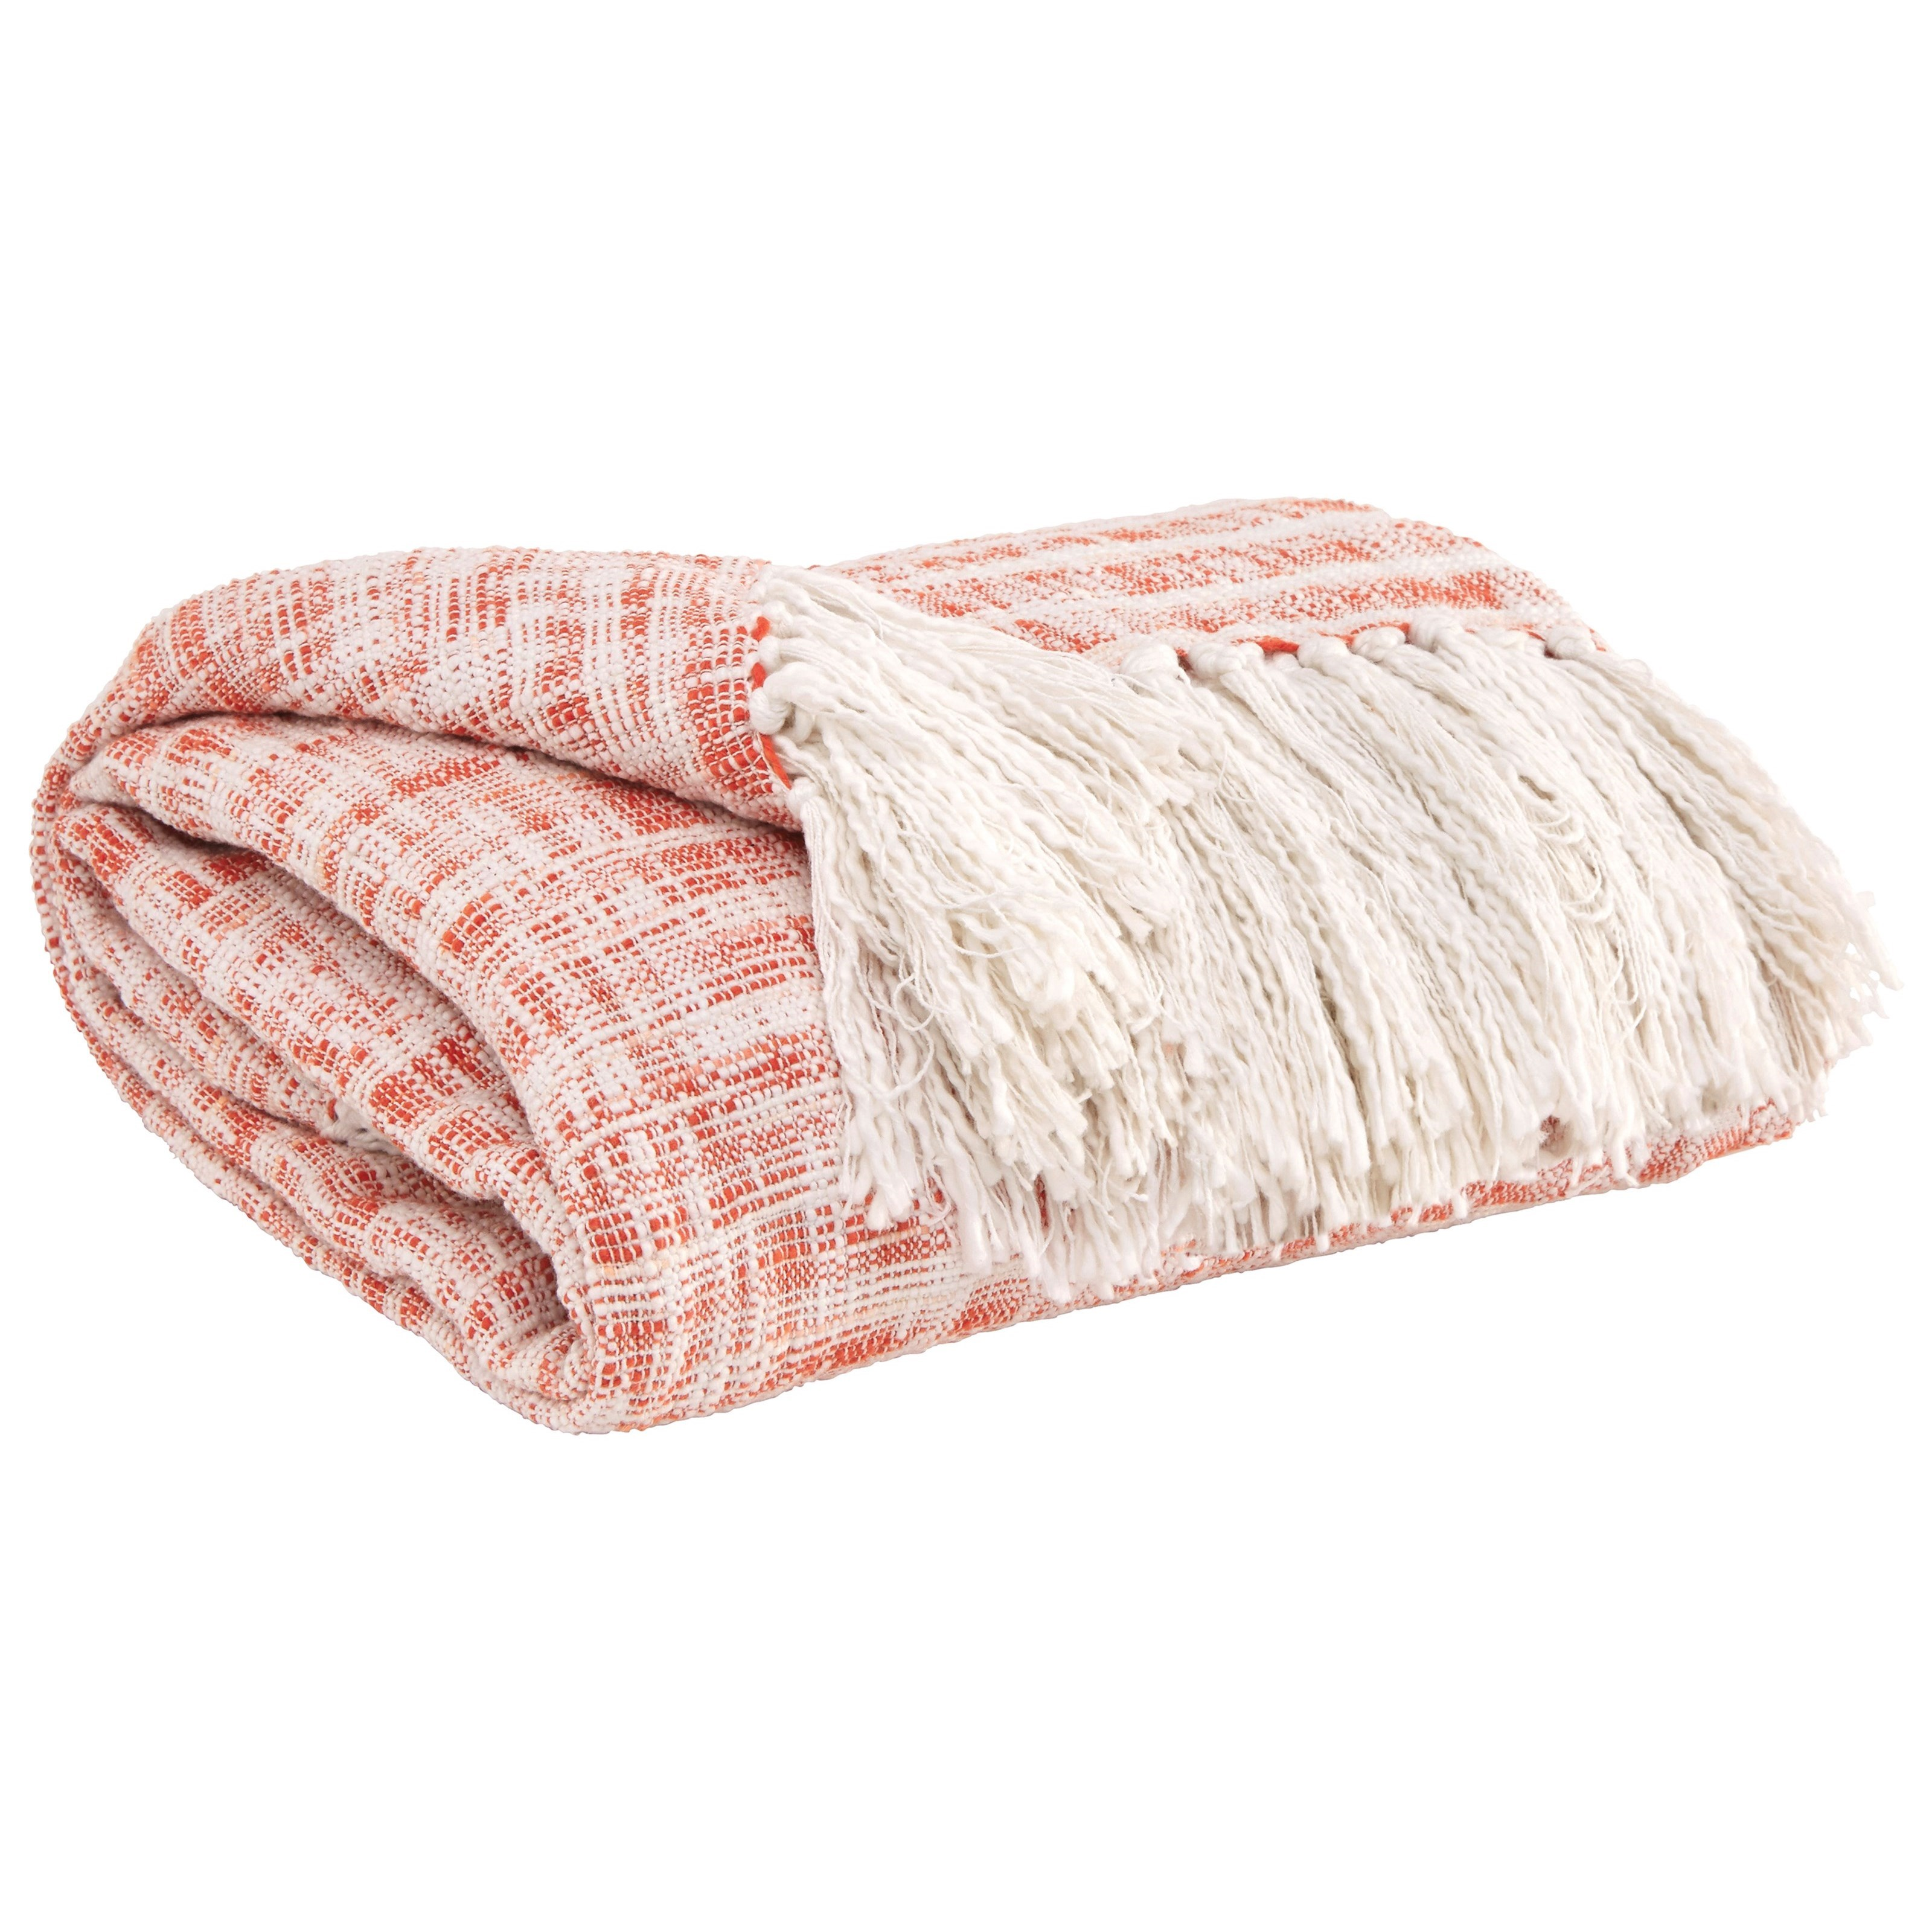 Signature Design by Ashley Throws Cassbab - Coral Throw - Item Number: A1000081T